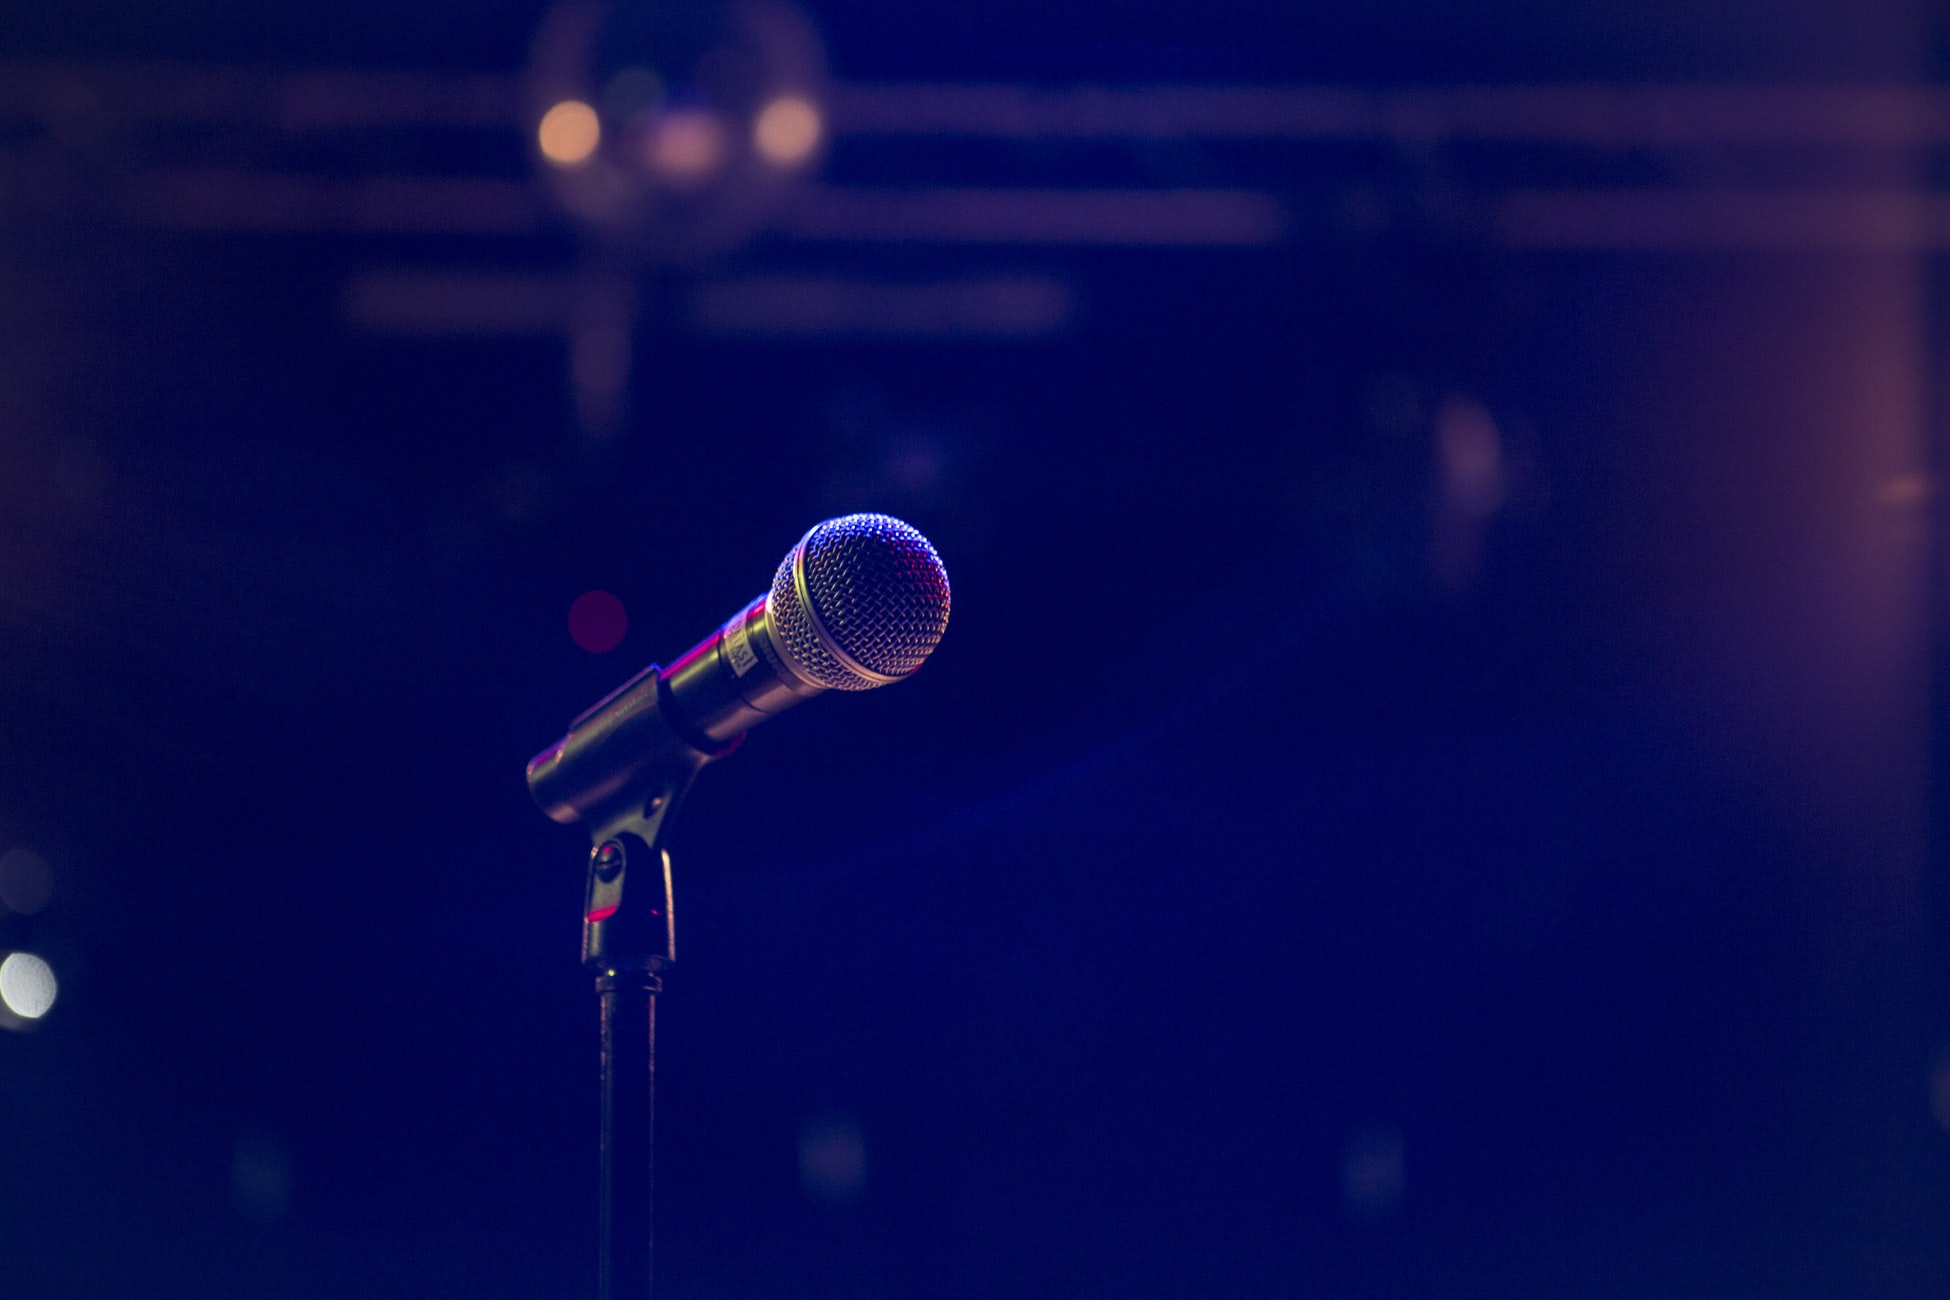 A microphone is pictured against a blurred background.